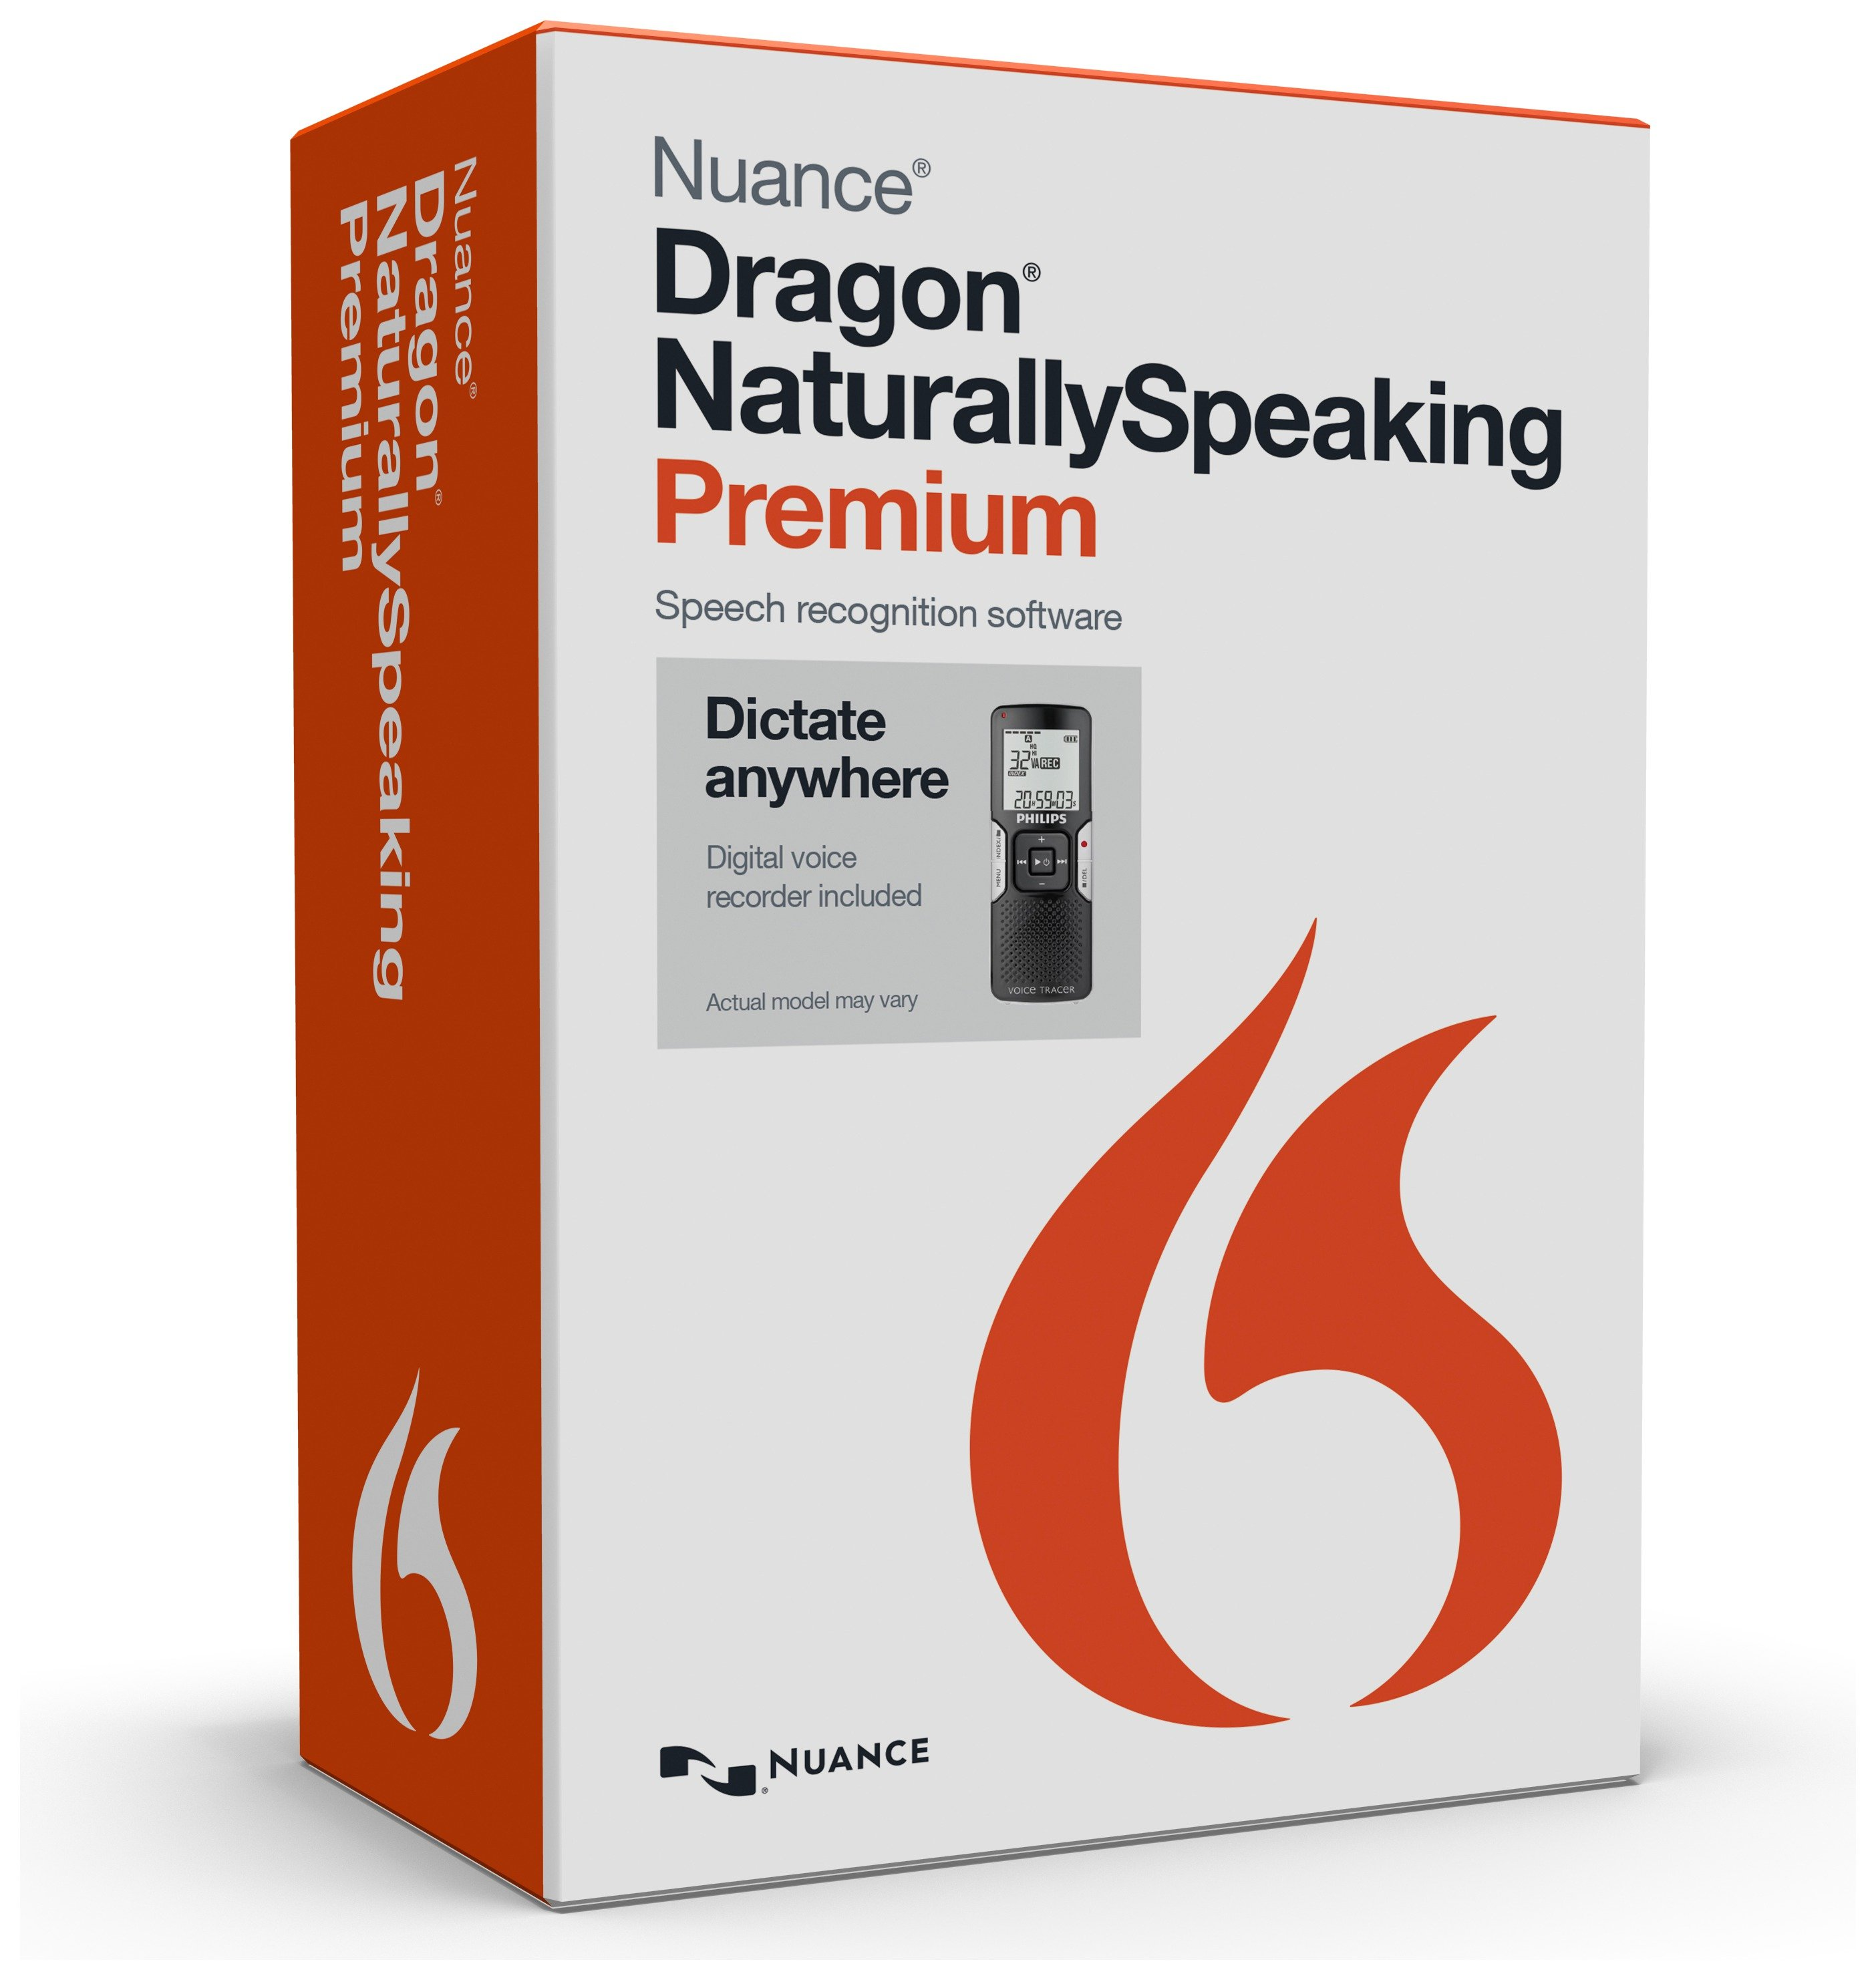 Nuance Nuance Dragon - Naturally Speaking 13 Speech Software Mobile